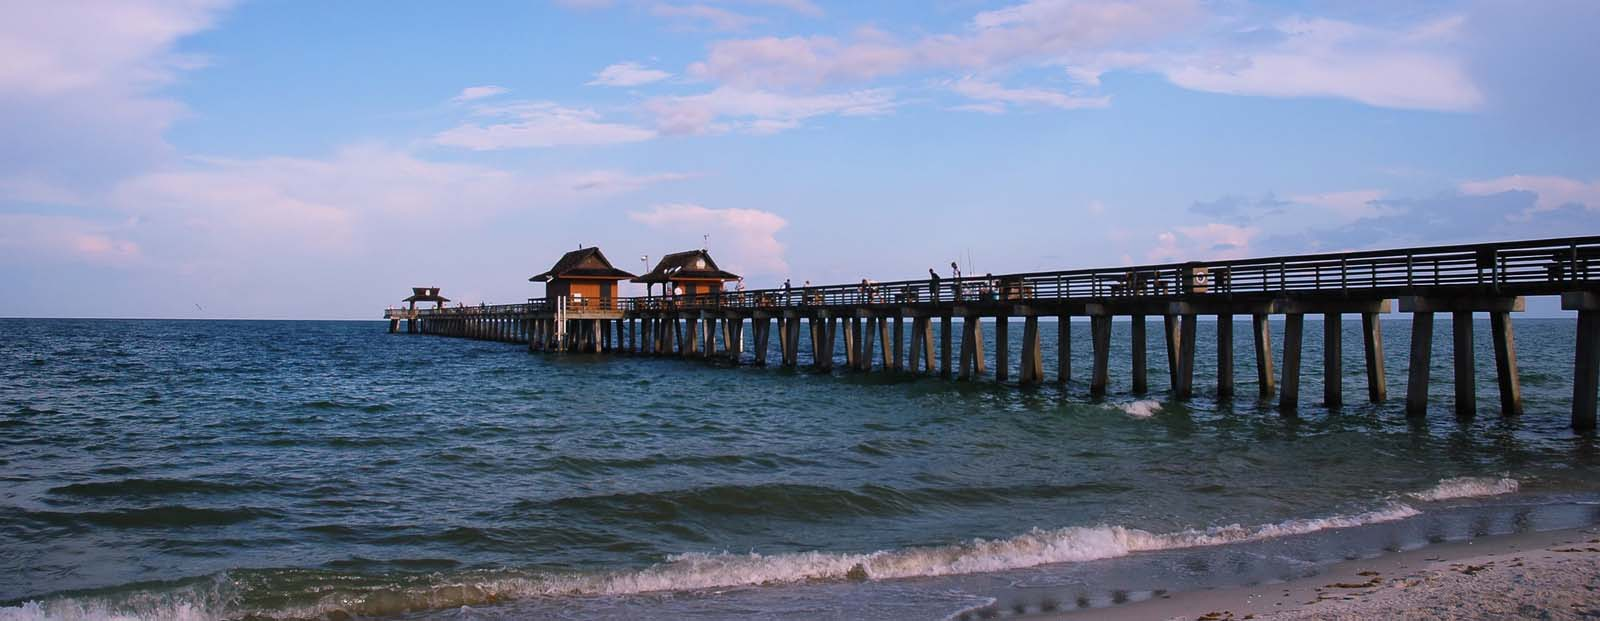 General Ophthalmologist Opening in Southwest Florida!